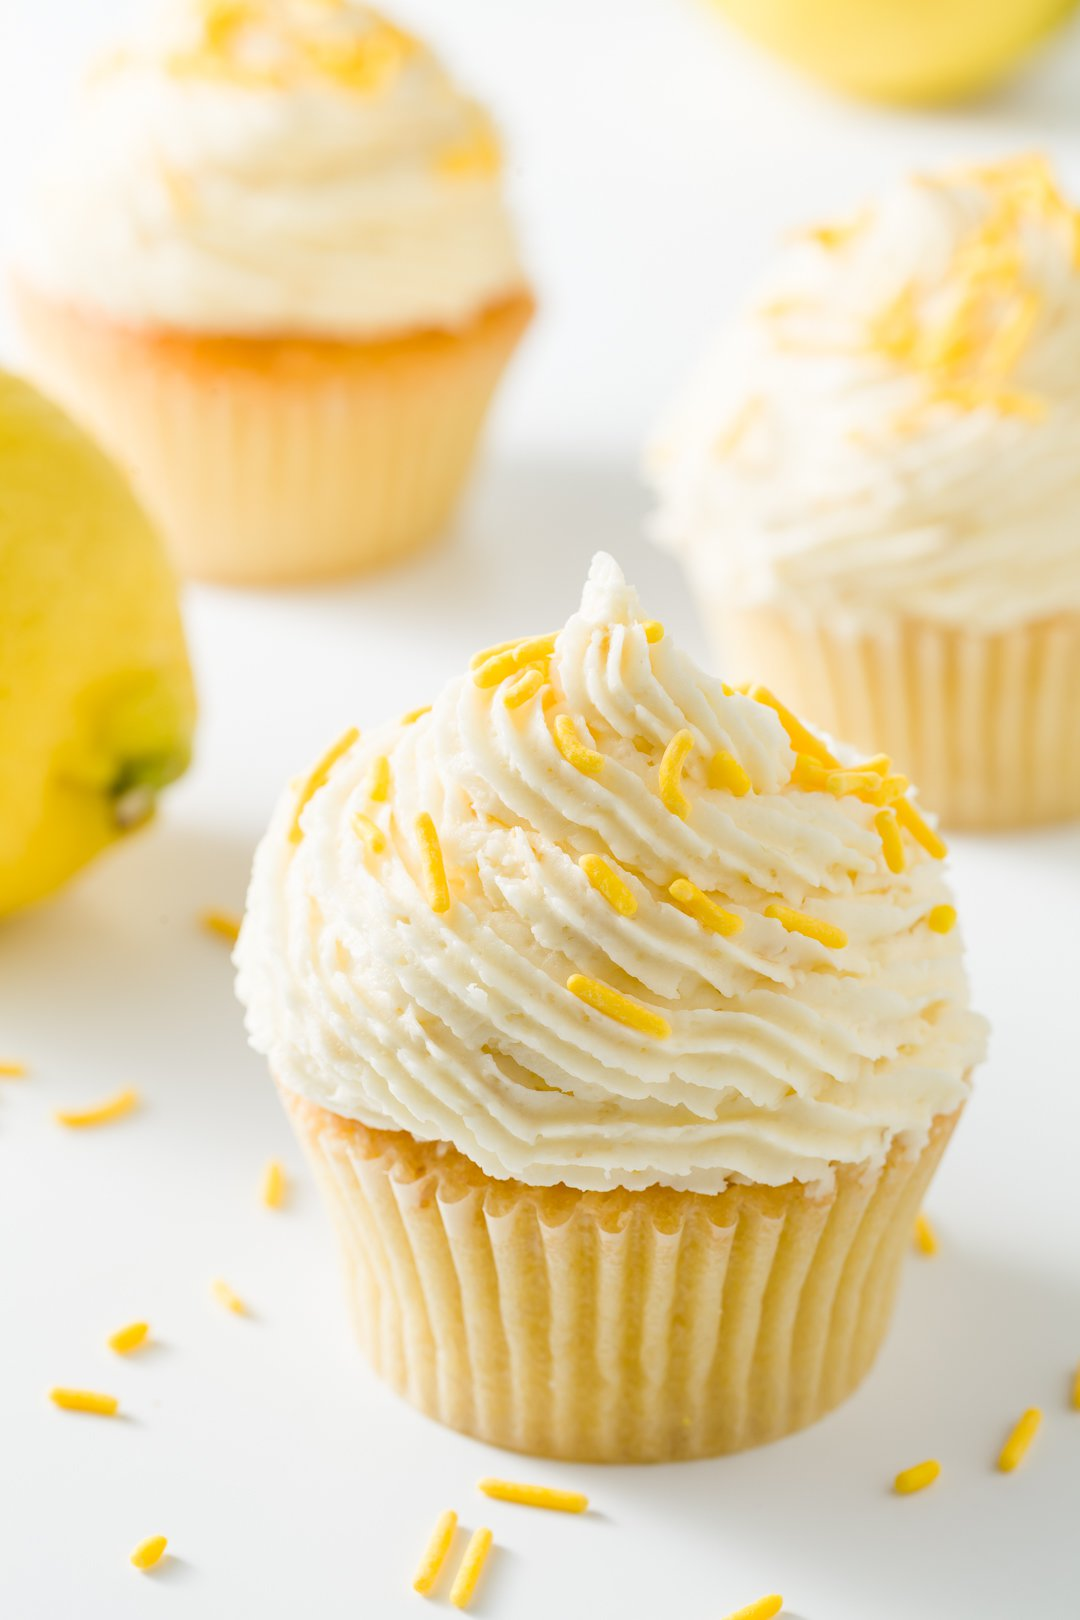 Several cupcakes frosted with lemon buttercream frosting